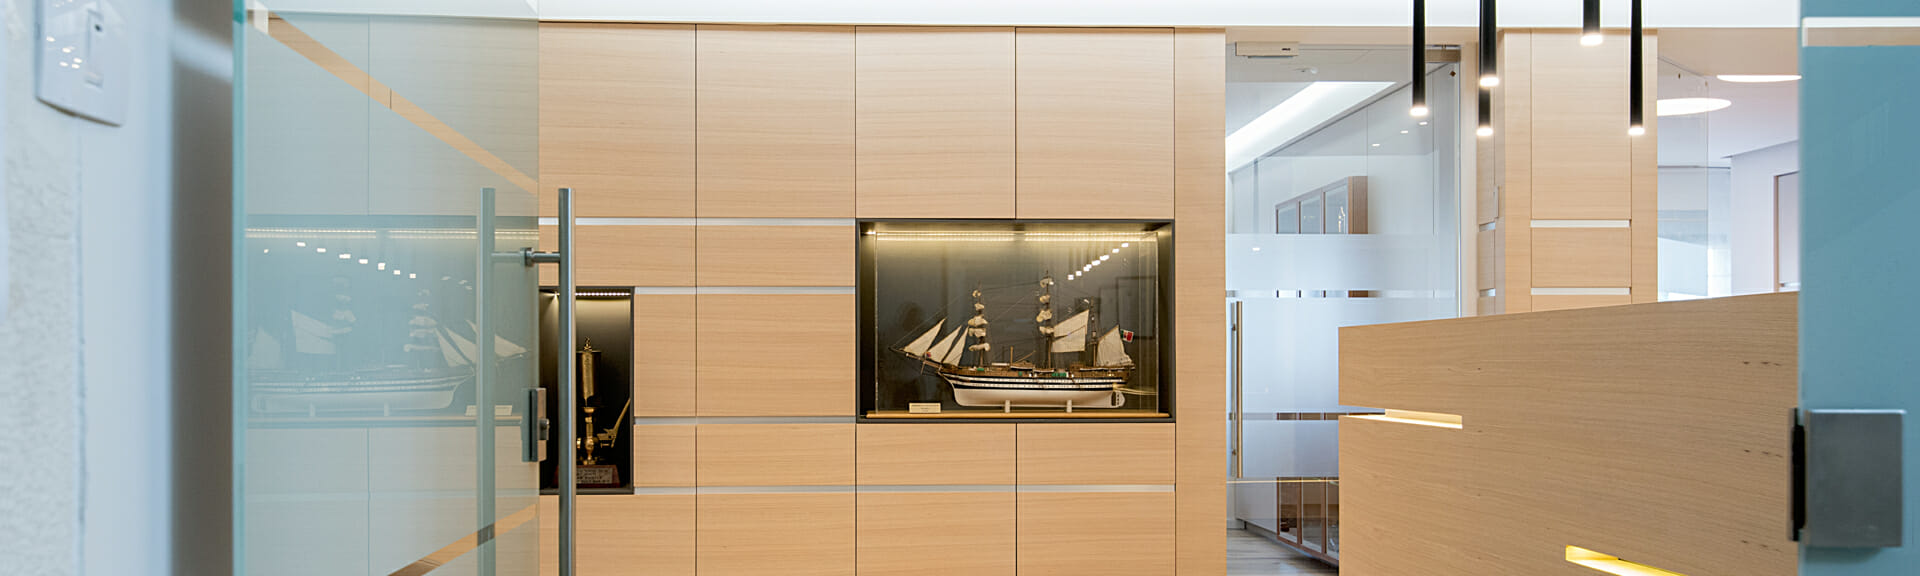 Glazberg-law-office-Haifa-Slider6